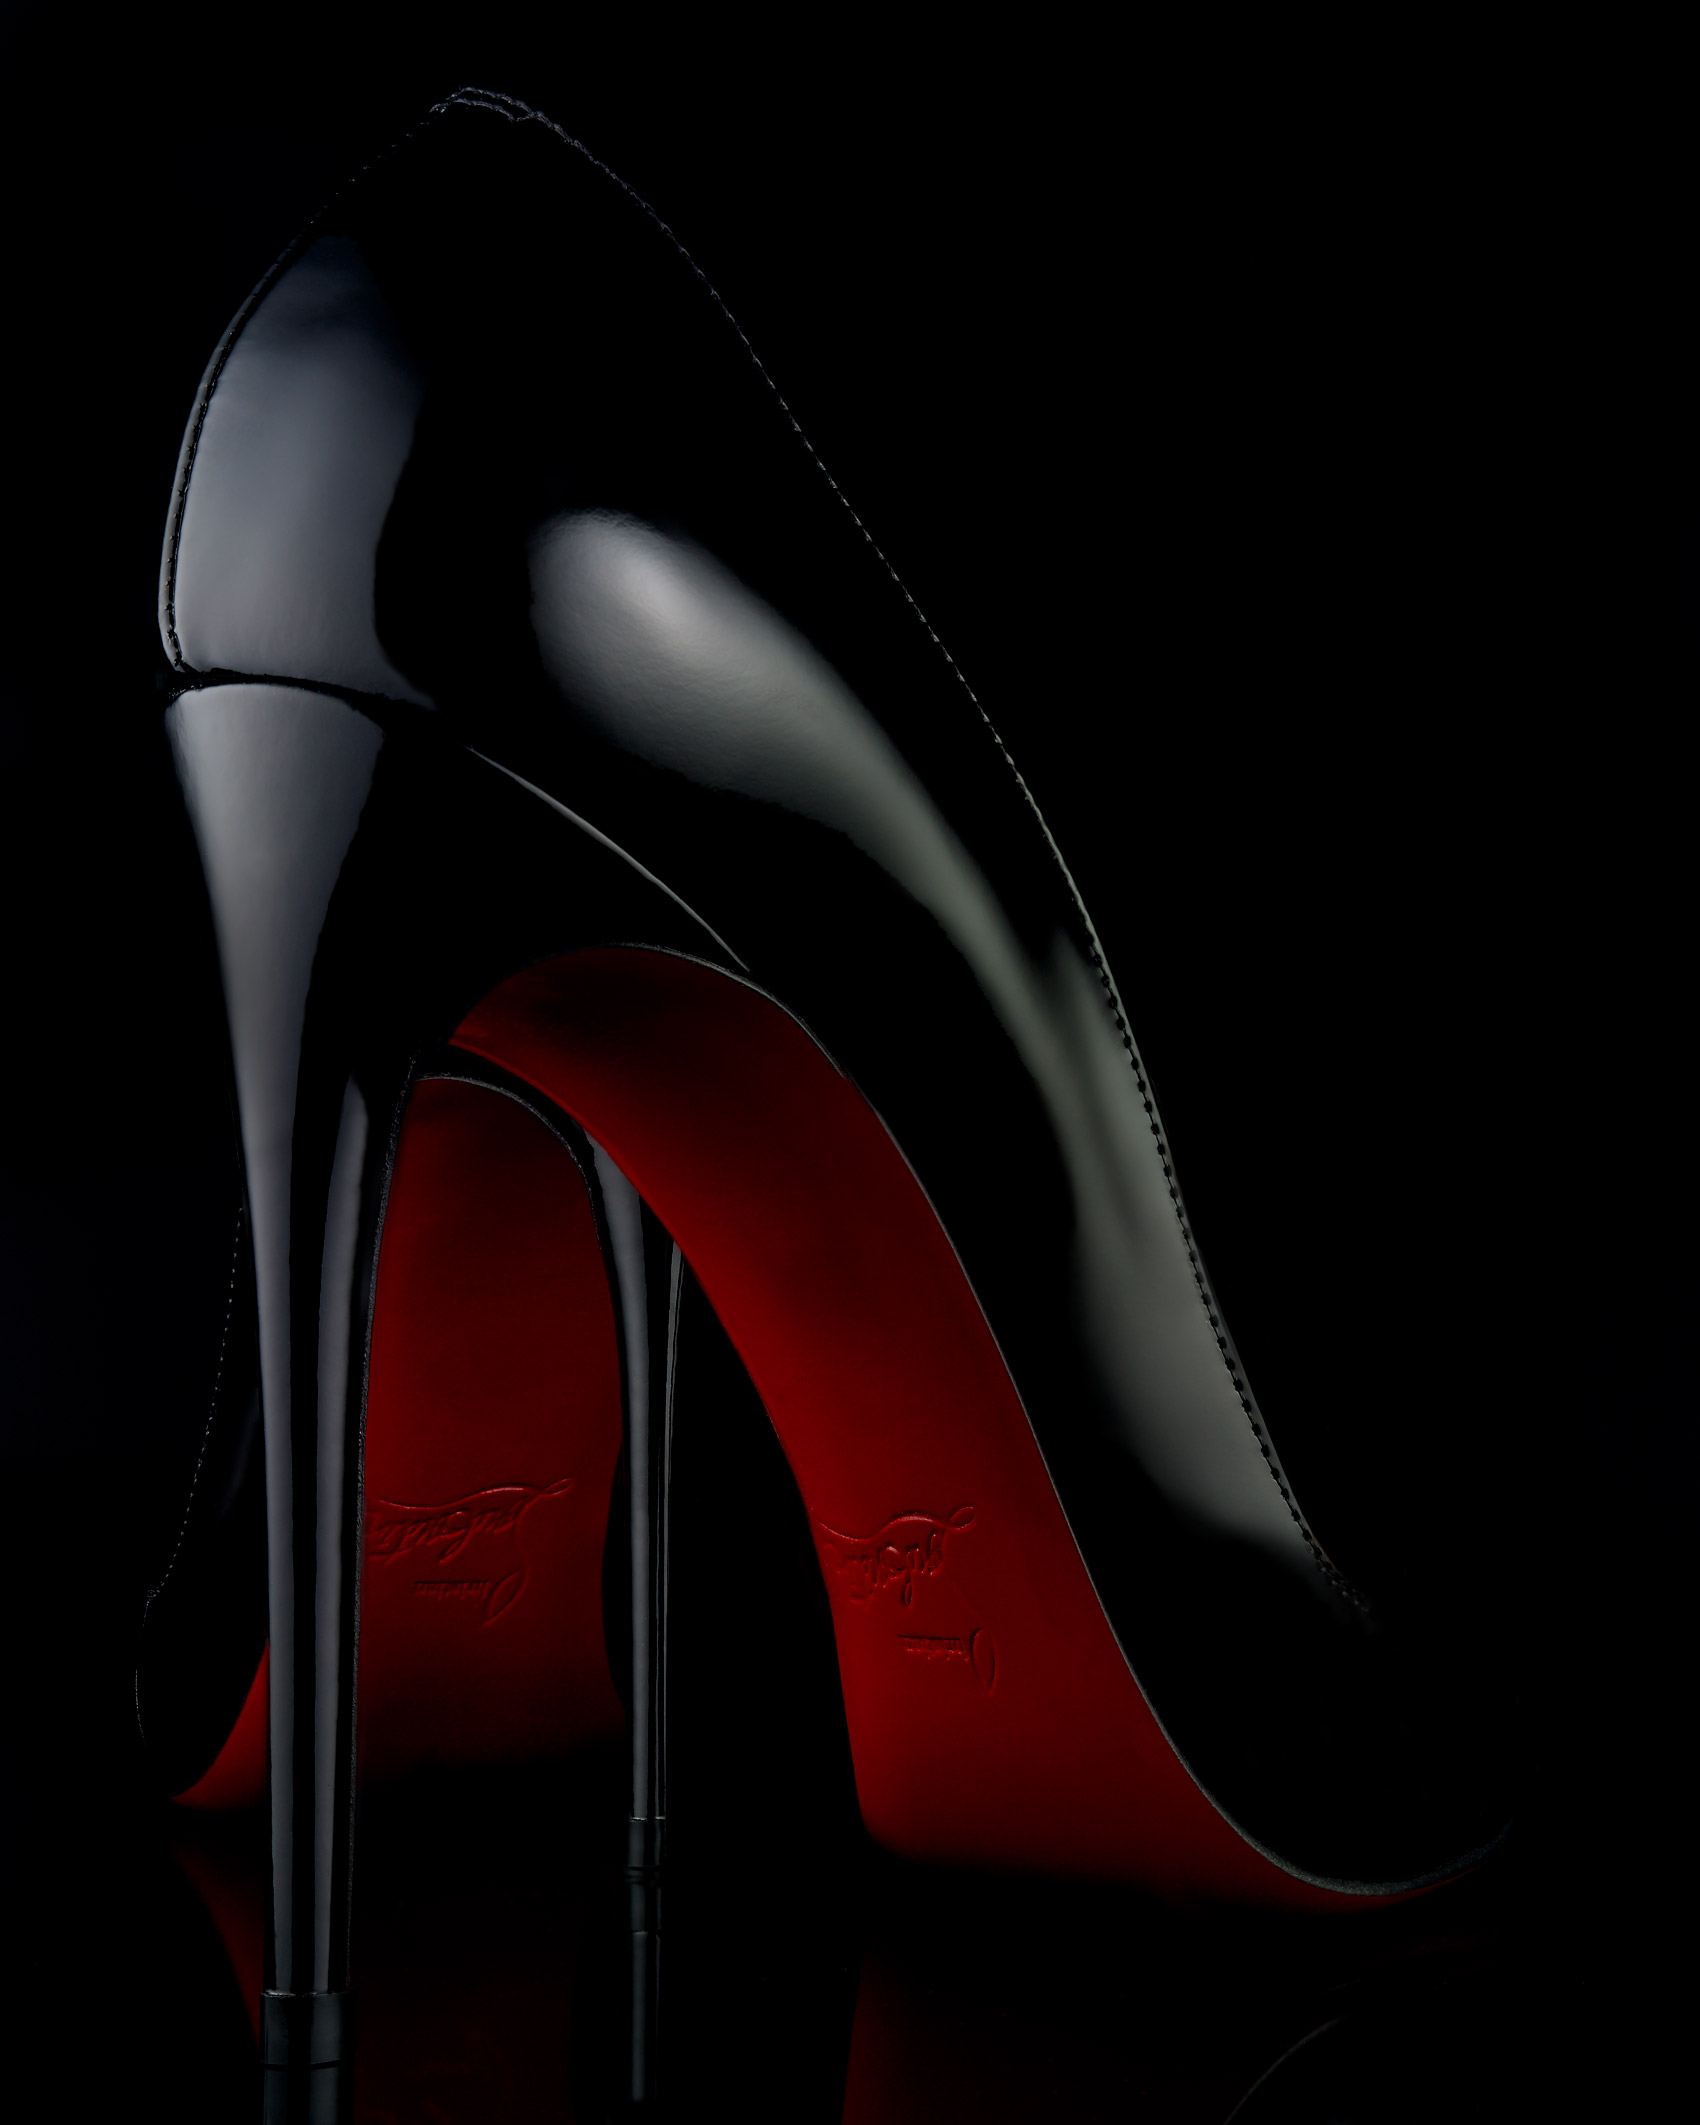 Christian Louboutin Shoe Still Life